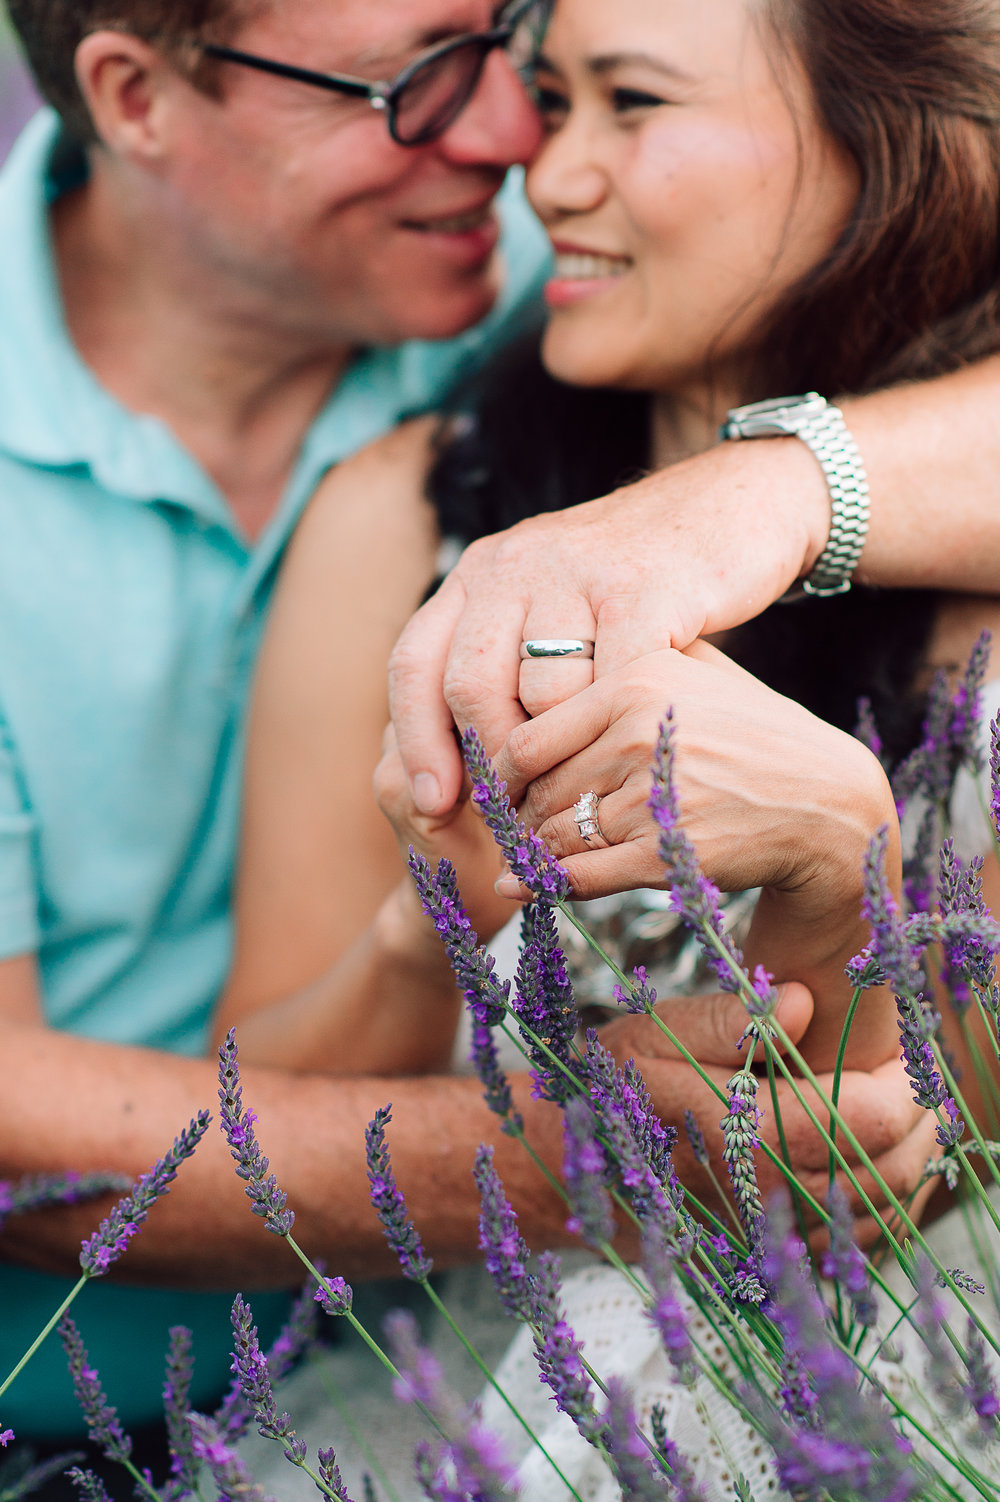 engagement_lavenderfield_youseephotography_LidiaOtto (28).jpg